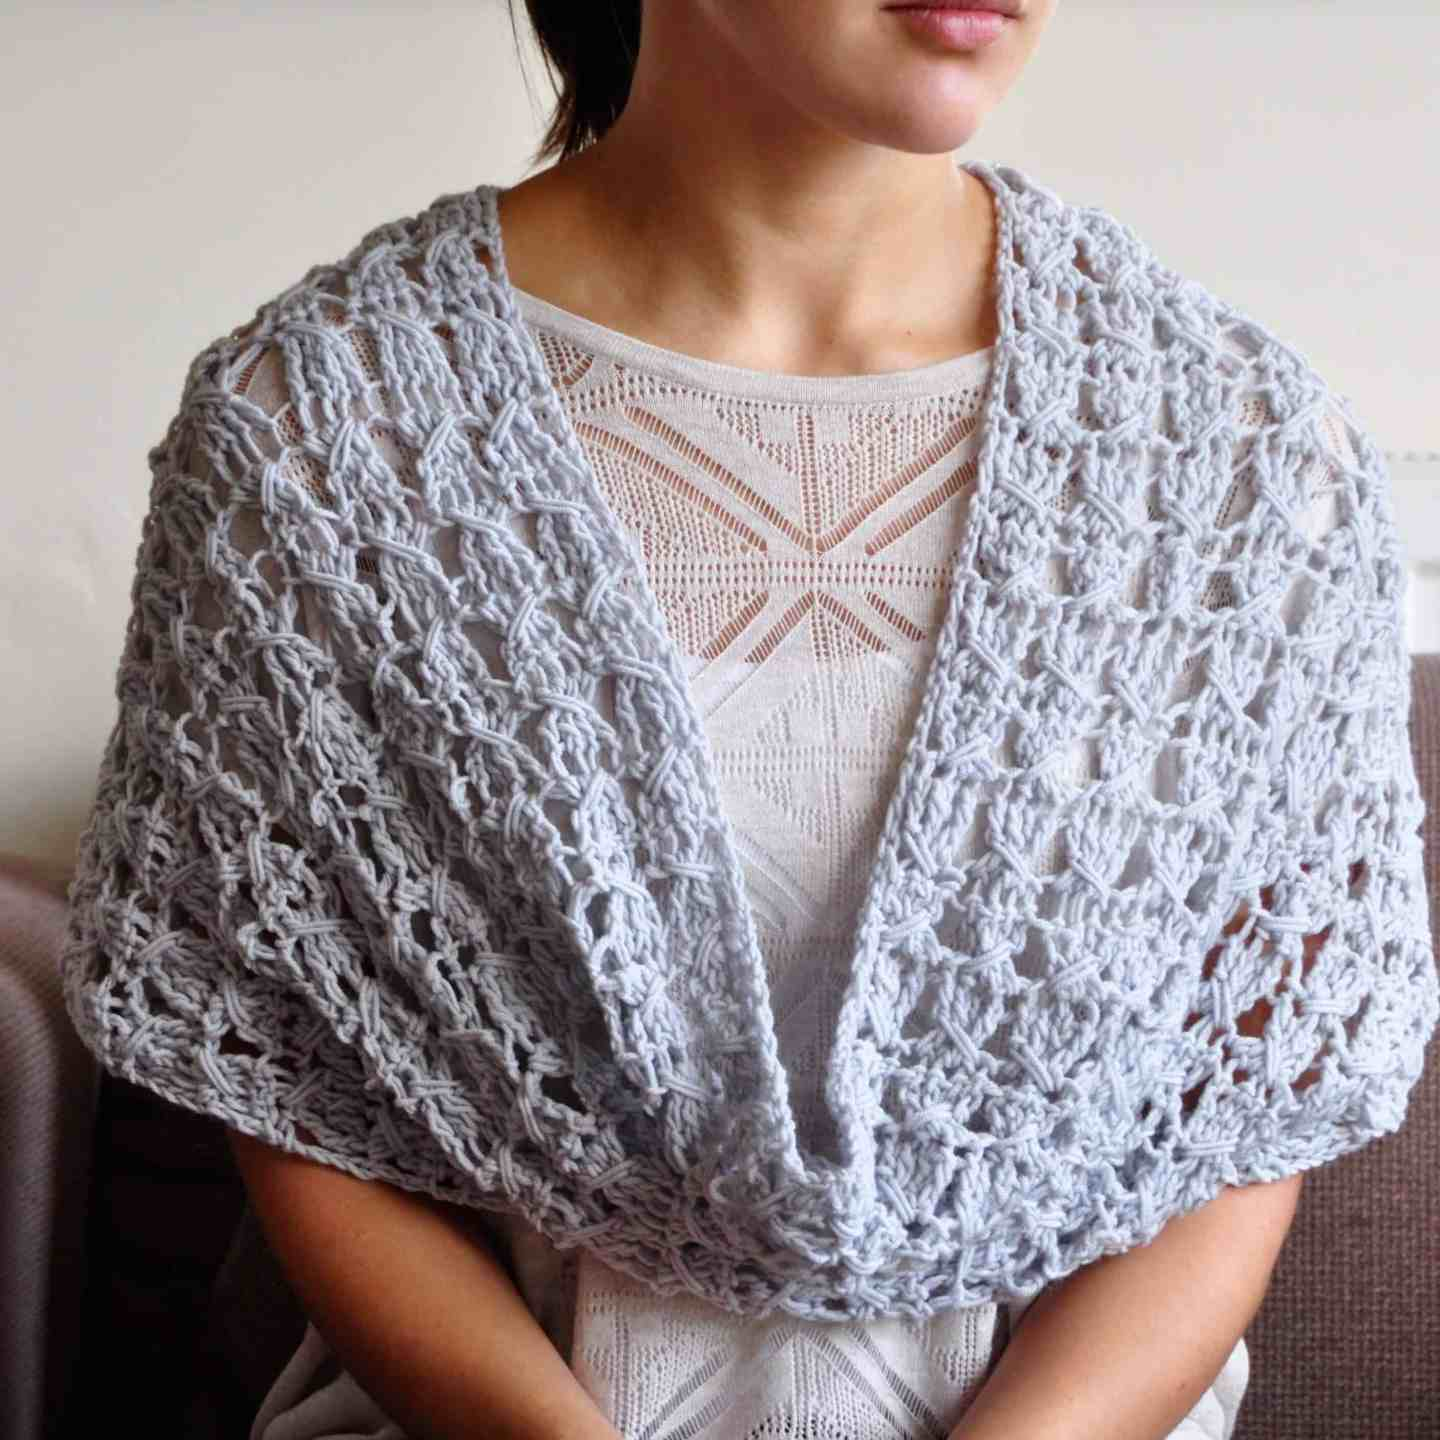 The Classic Cowl by HanJan Crochet